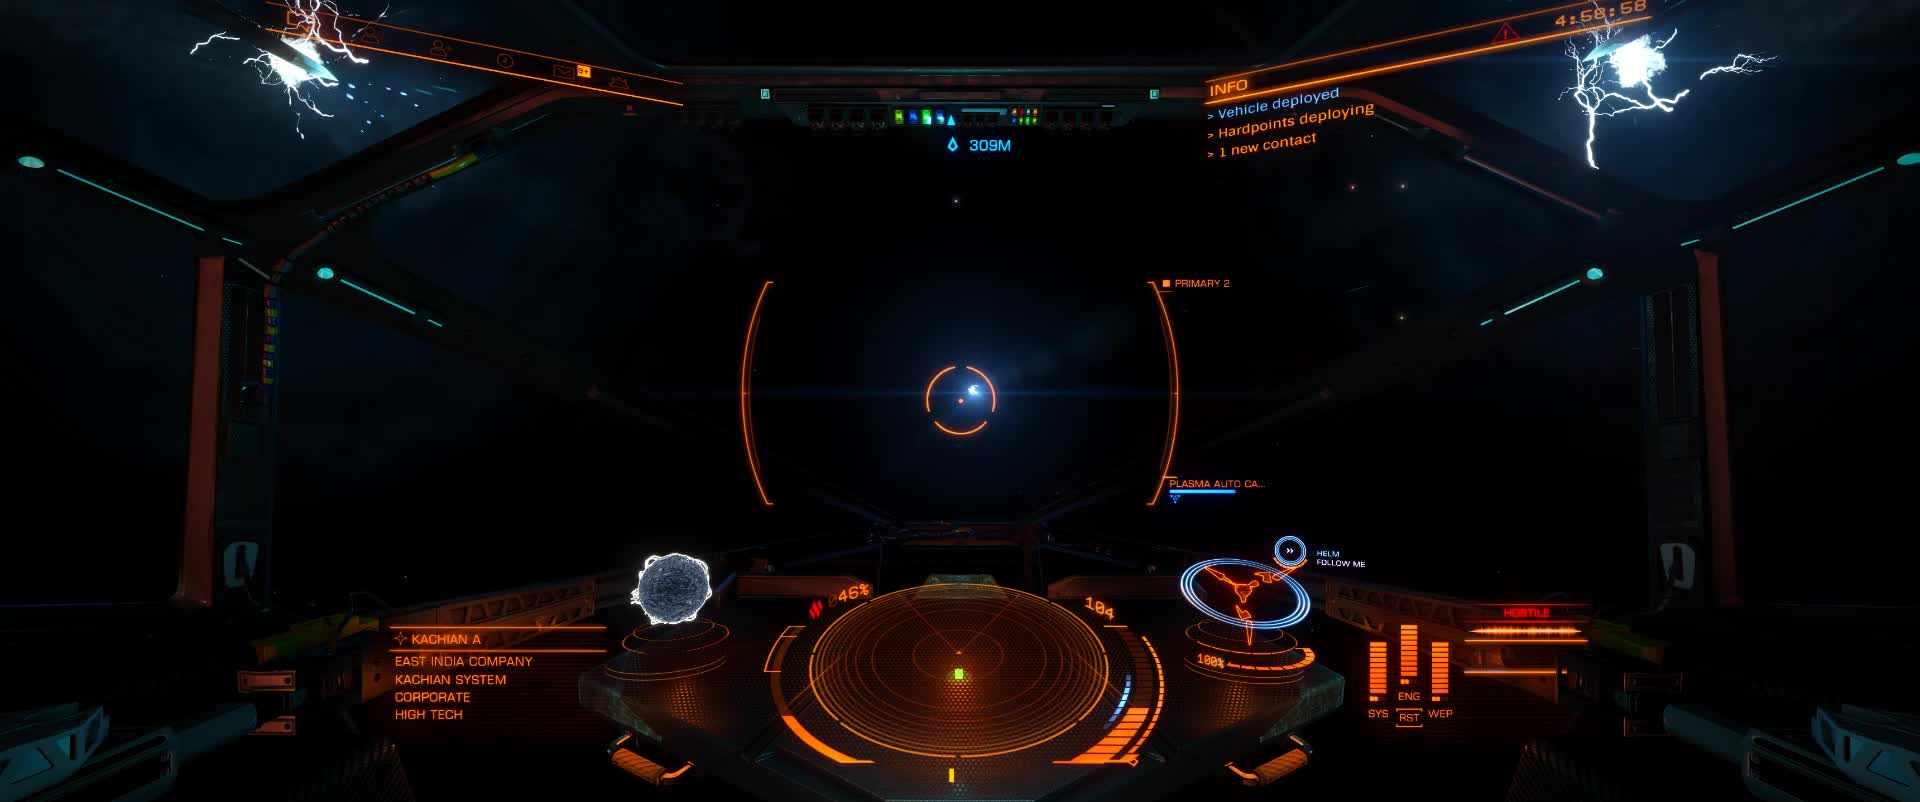 elitedangerous, vlc-record-2018-12-05-22h59m58s-Elite Dangerous 2018.12.05 - 21.59.32.03.DVR.mp4- GIFs